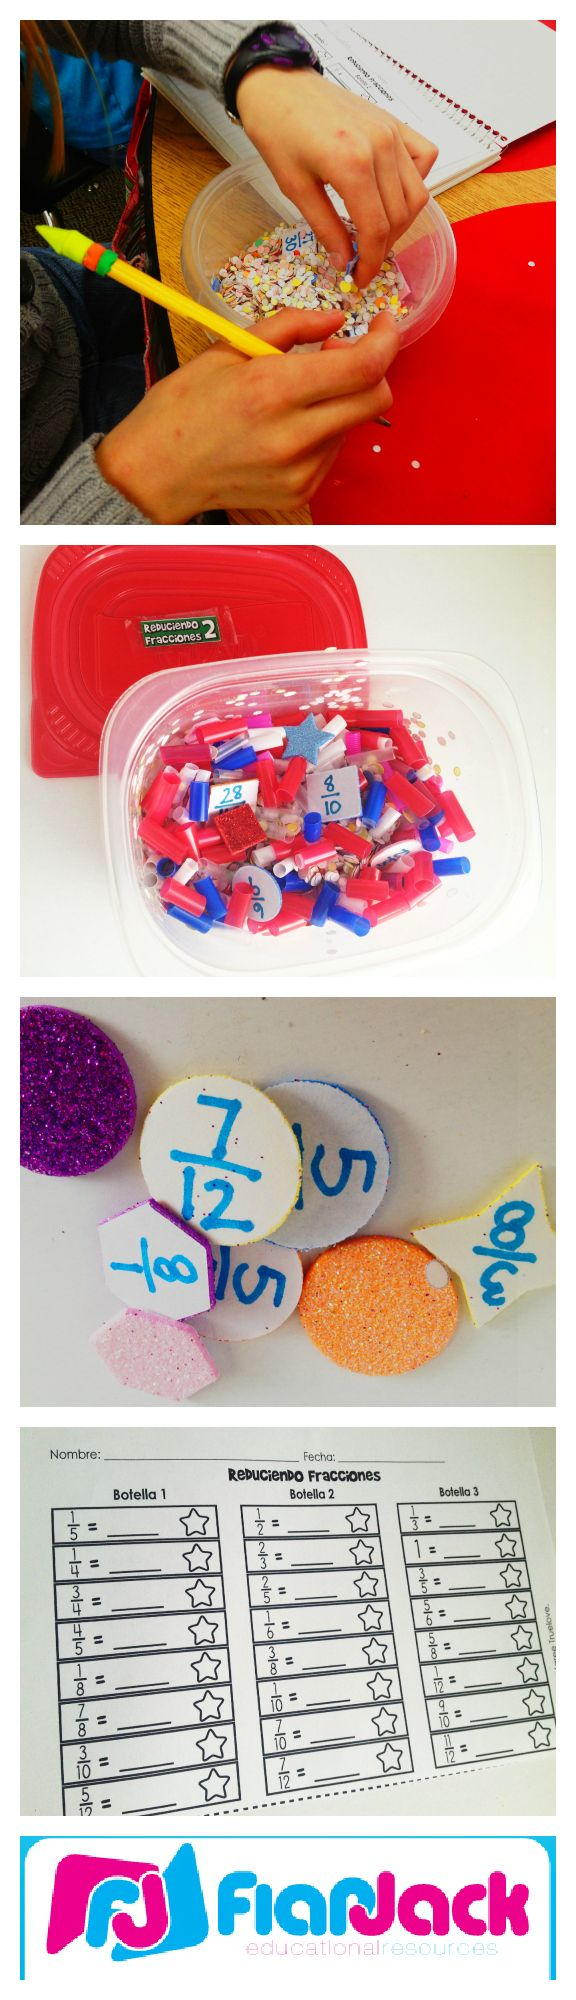 Fraction Treasure Hunt Freebie  Works Like Discovery Bottles  Covers  Reducing Fractions, Improper To